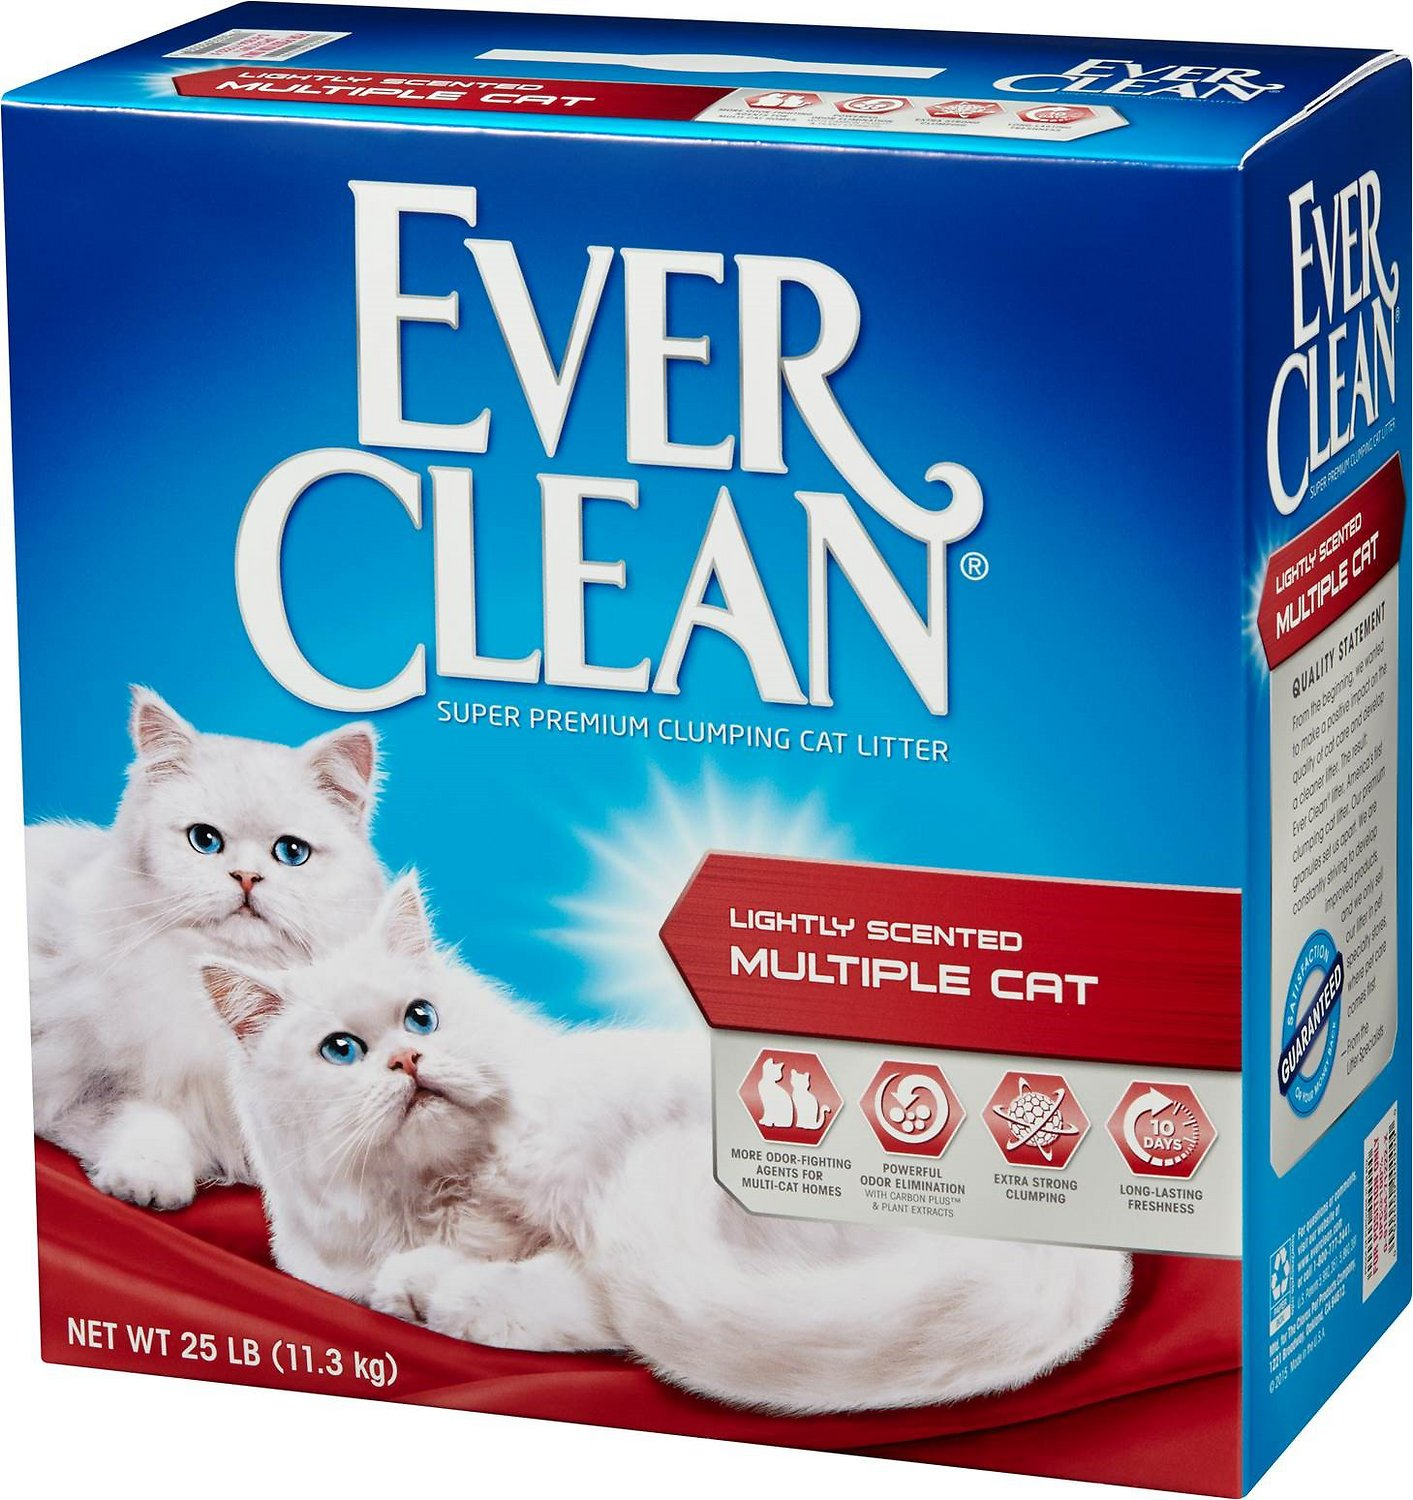 Ever Clean Multicat Clumping Cat Litter, 25lb Box. Cheap Bachelors Degree Online. Computer Services Wilmington Nc. Counseling For Substance Abuse. Is Add Considered A Disability. Child Care Associates Danbury Ct. Independent Investment Bankers. 2 Year Bachelors Degree Online. Vancouver Bed Breakfast Sell My Property Fast